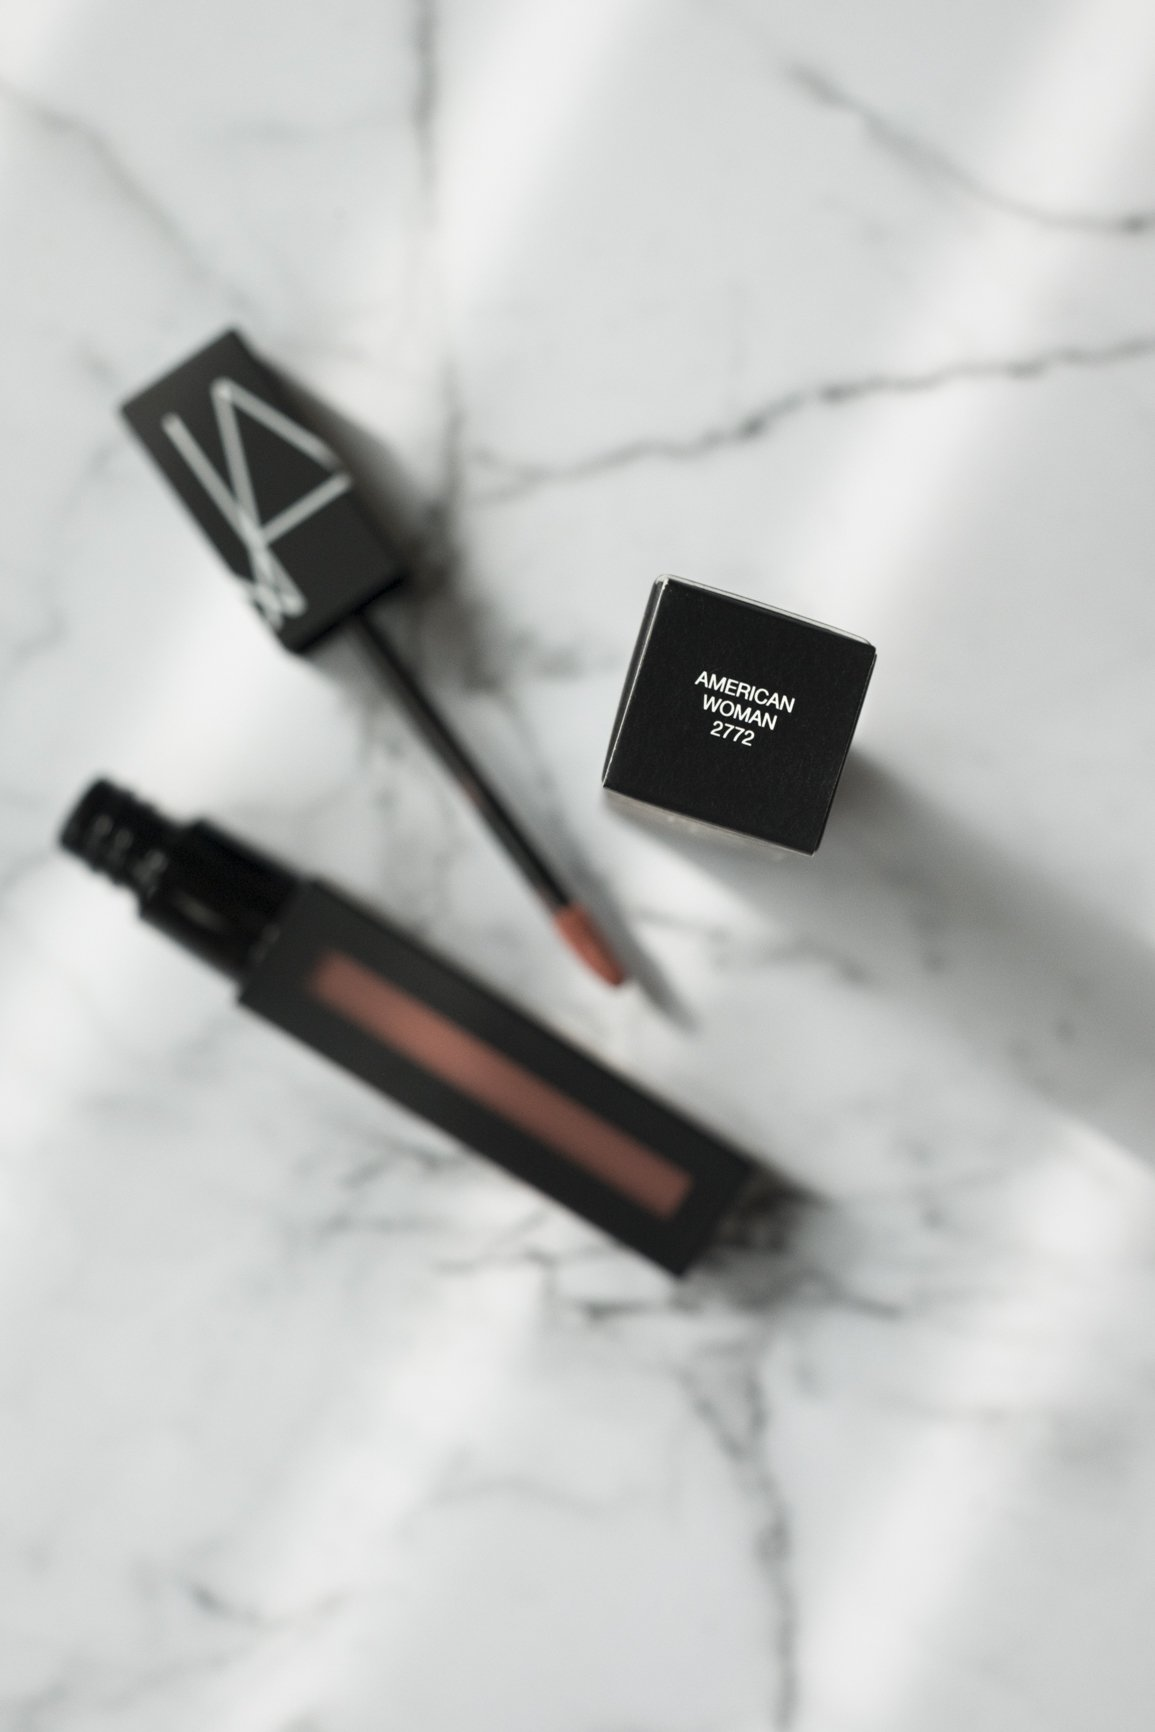 Nars Powermatte Lip Pigment in American Woman on marble table